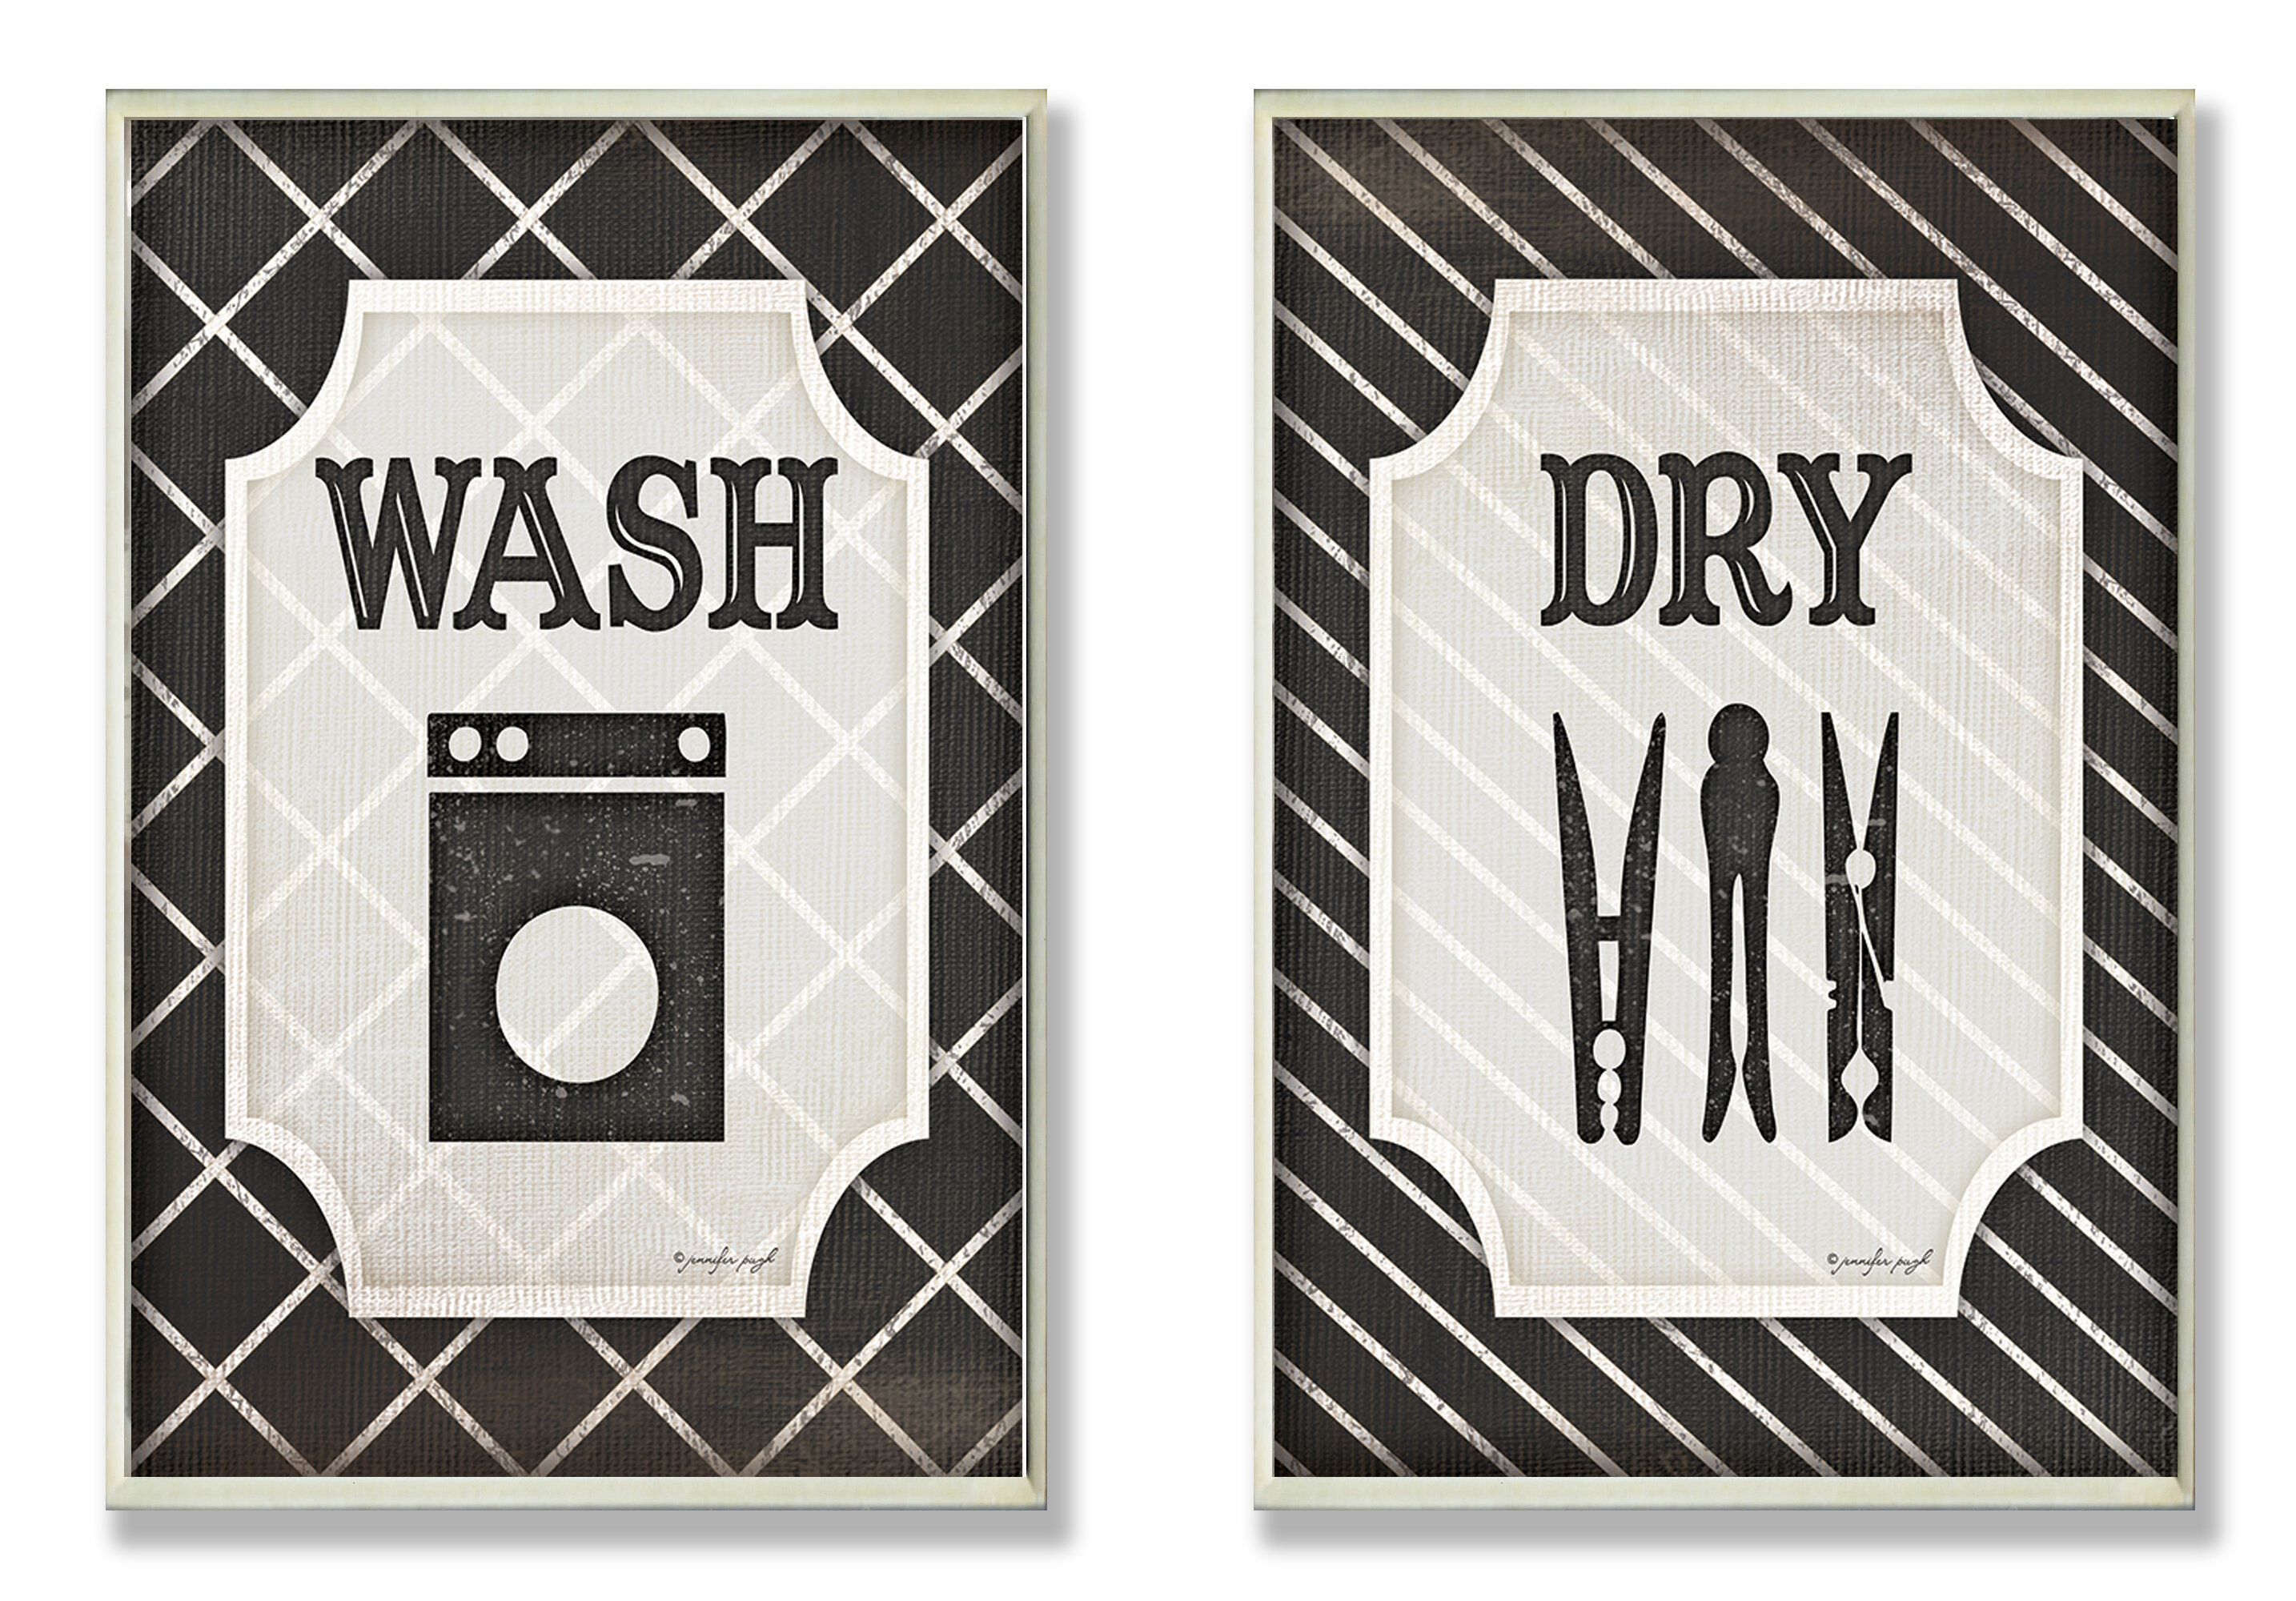 Laundry Wall Plaque Pleasing Laurel Foundry Modern Farmhouse Wash And Dry' Black And White Design Ideas